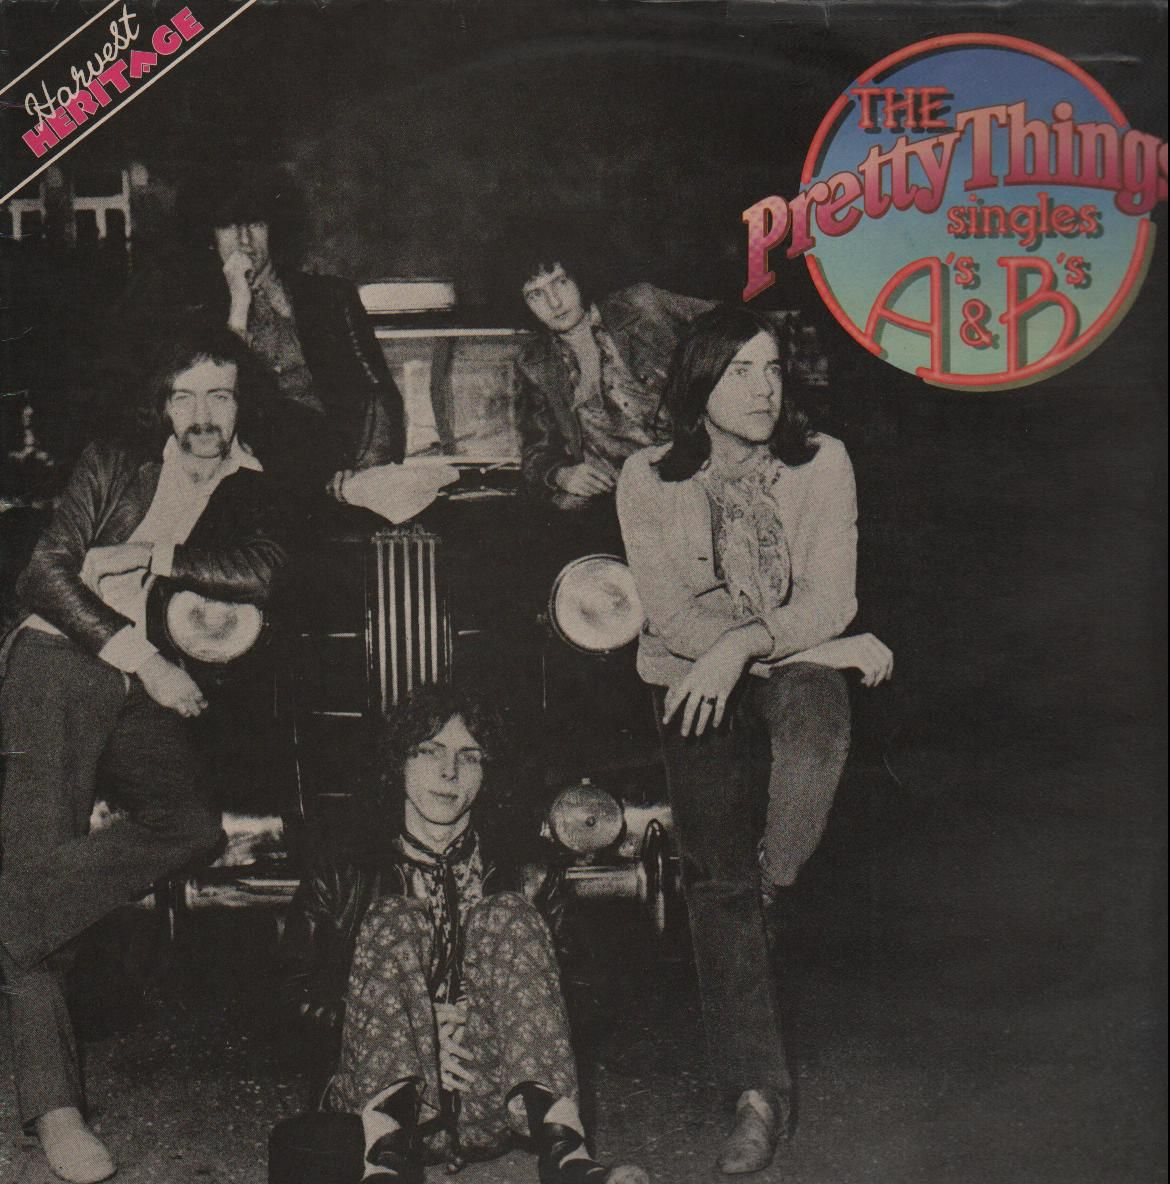 """The Pretty Things - """"The Singles A's & B's"""" LP (1977)"""